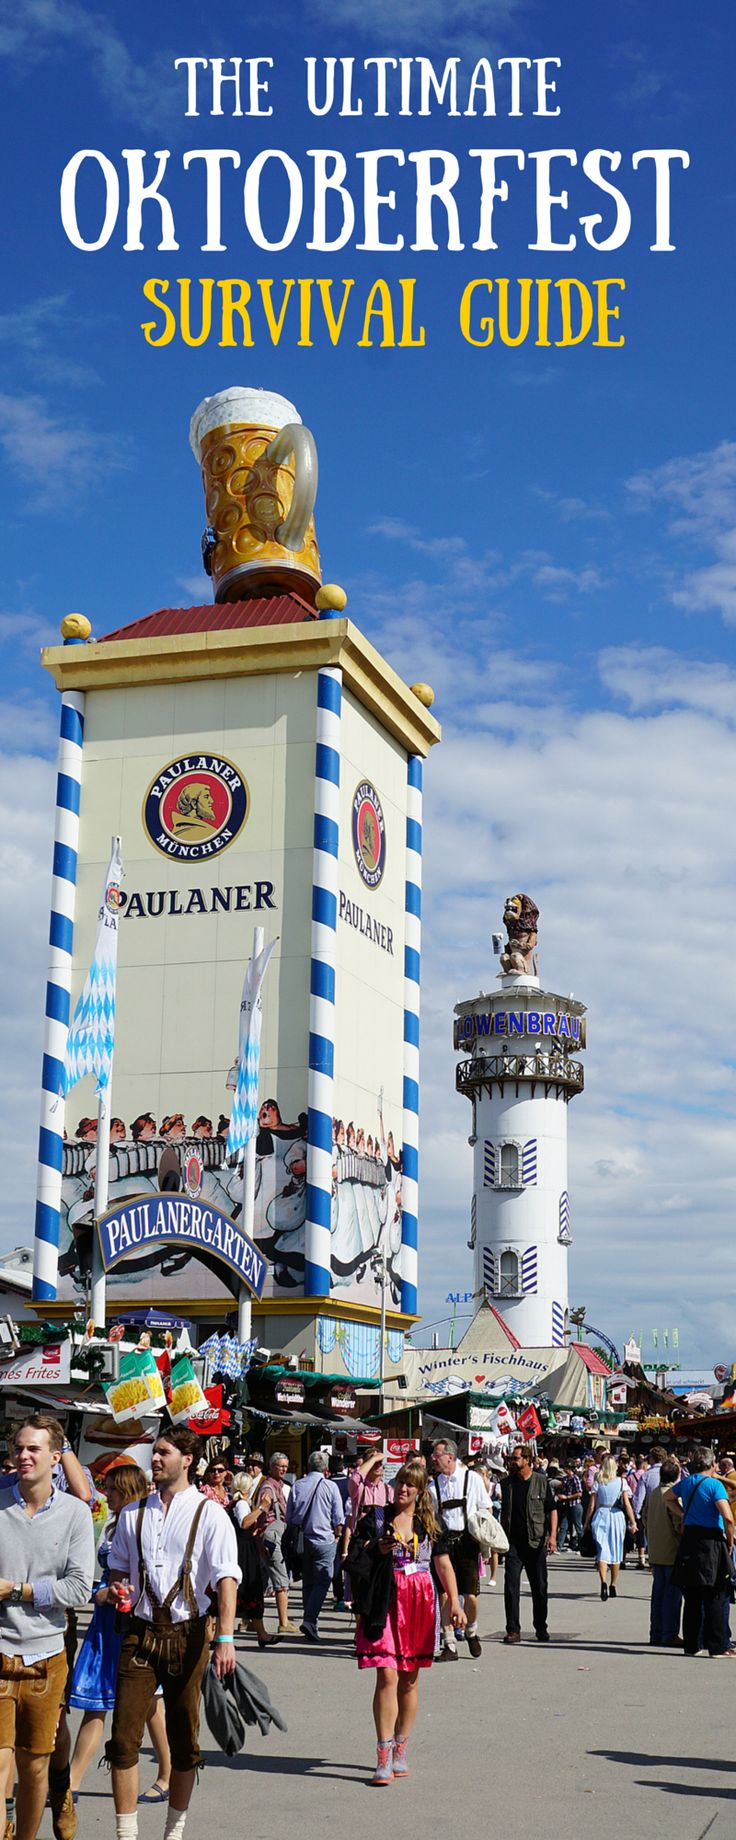 The ultimate survival guide to Oktoberfest in Munich. Where to stay, how to get into the famous beer tents and what to eat.